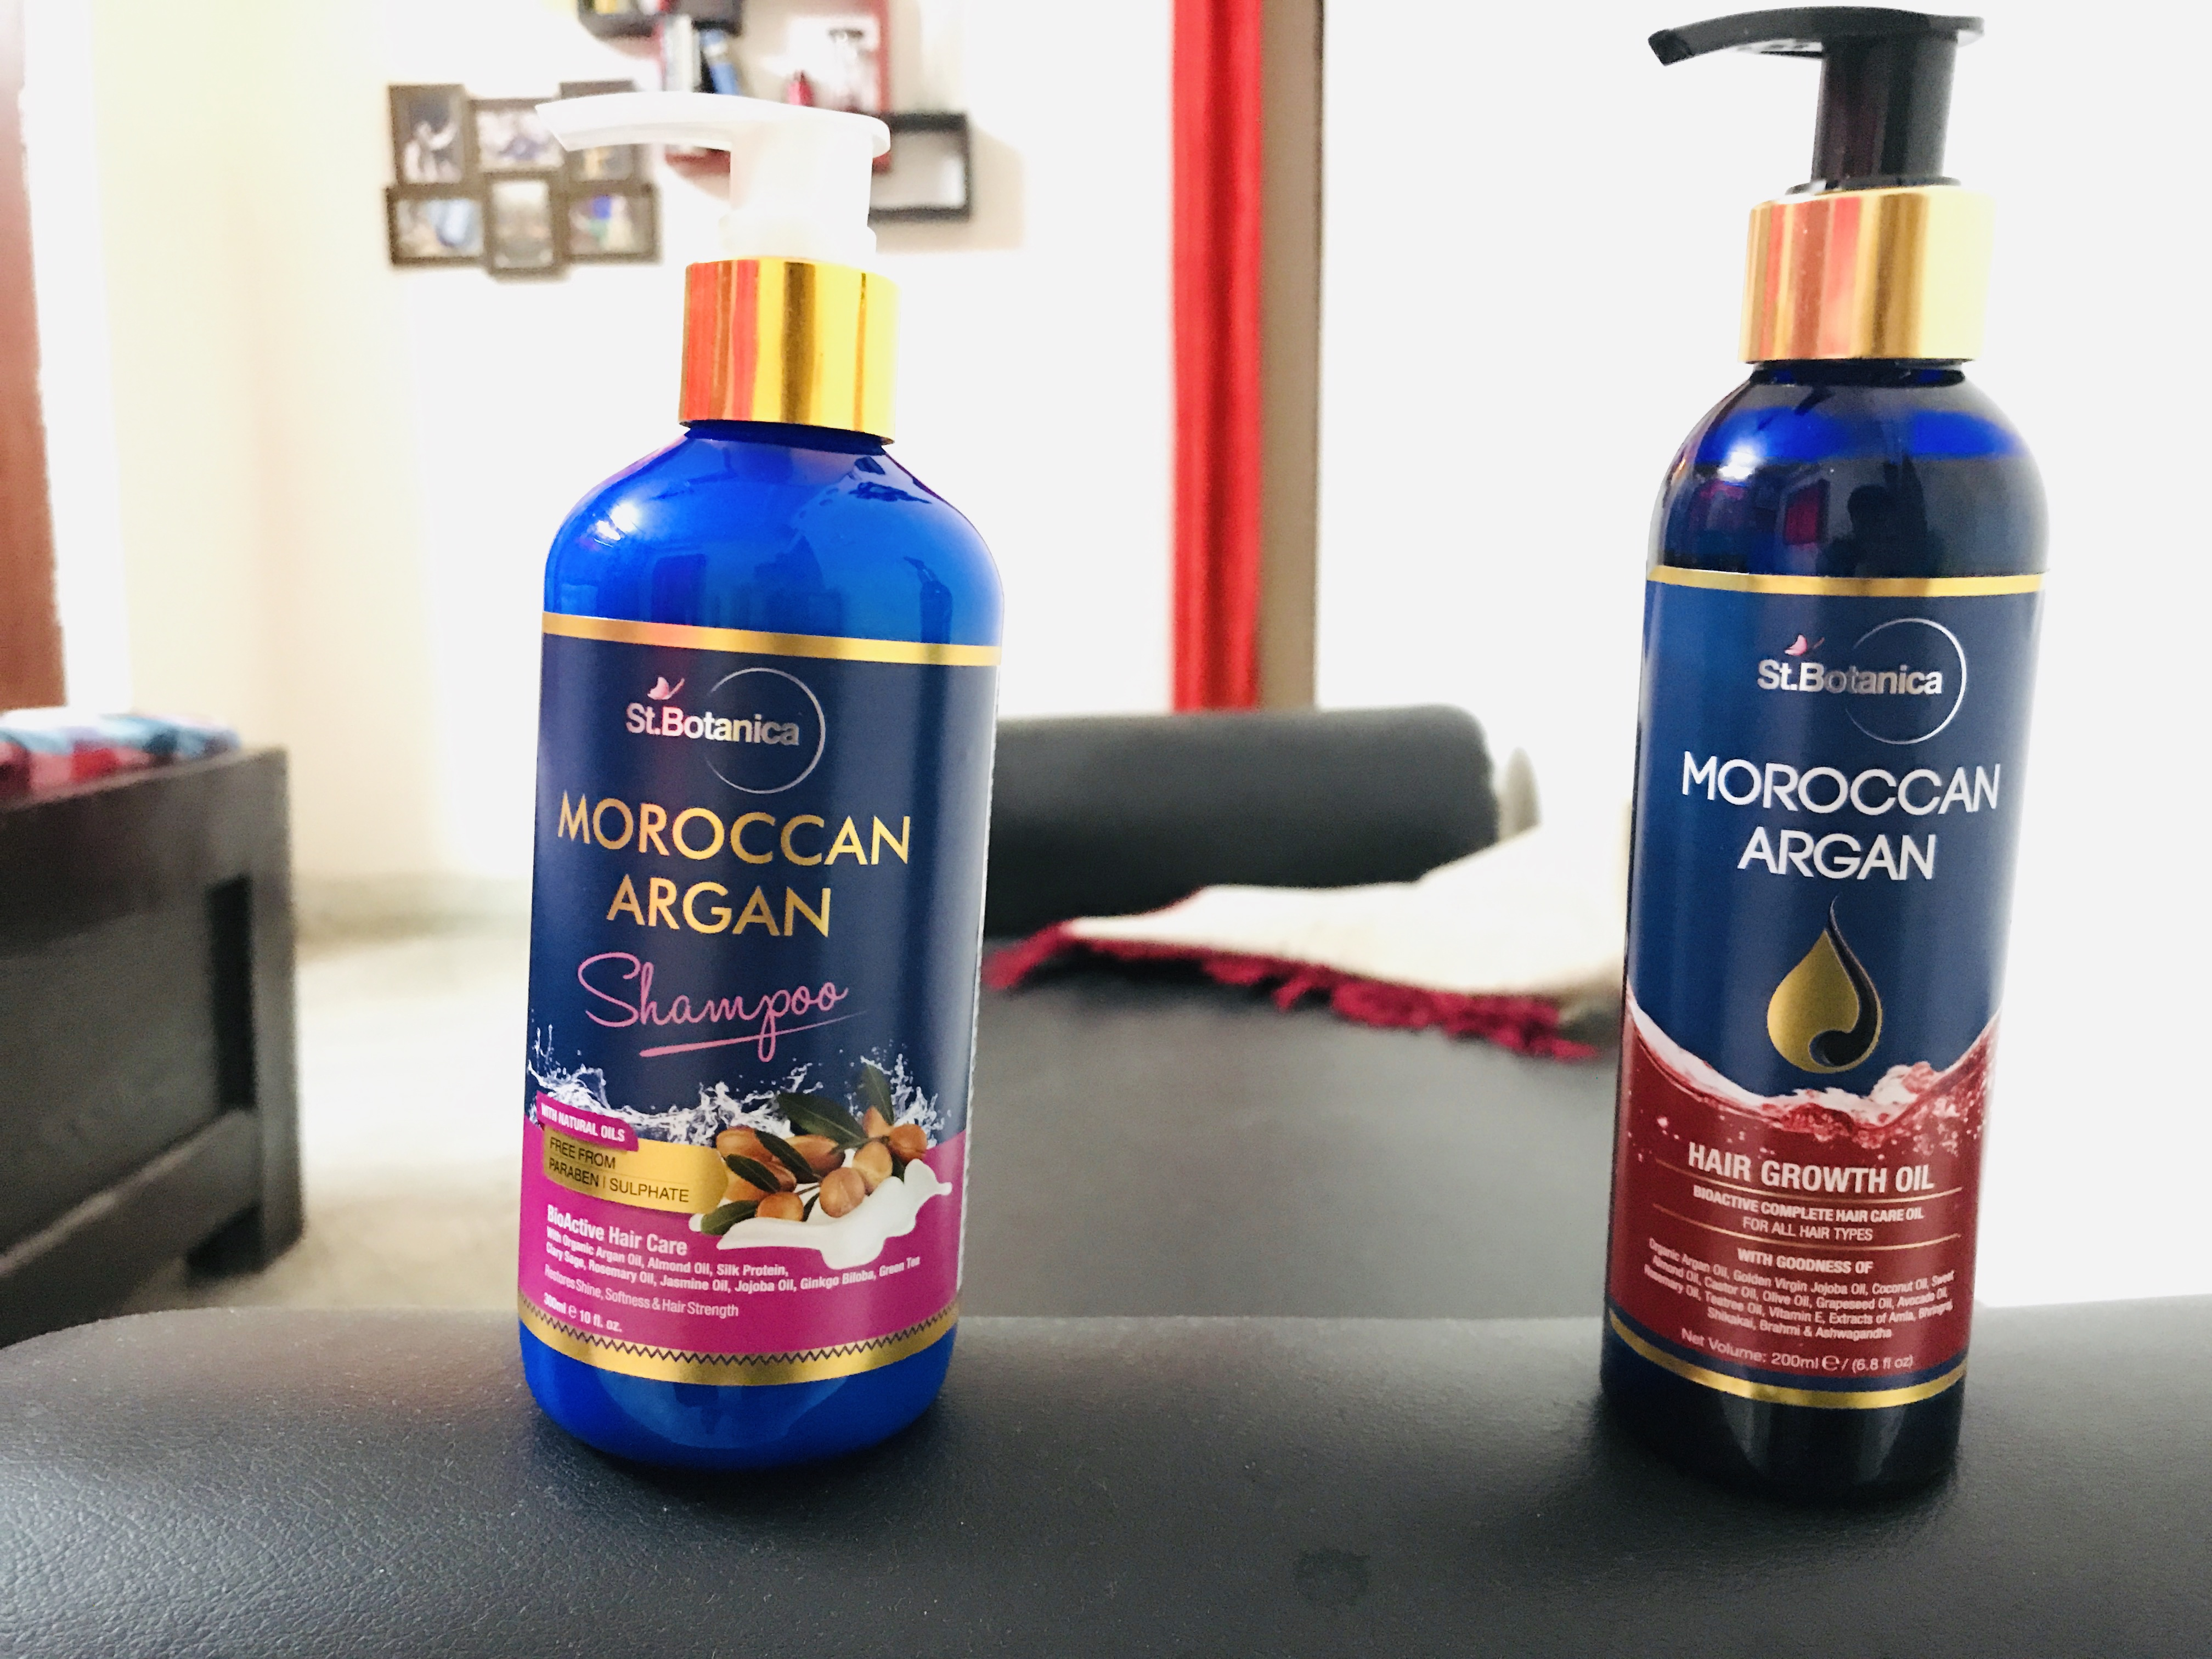 StBotanica Moroccan Argan Hair Shampoo-Best hair care combo-By talha_thakur-2